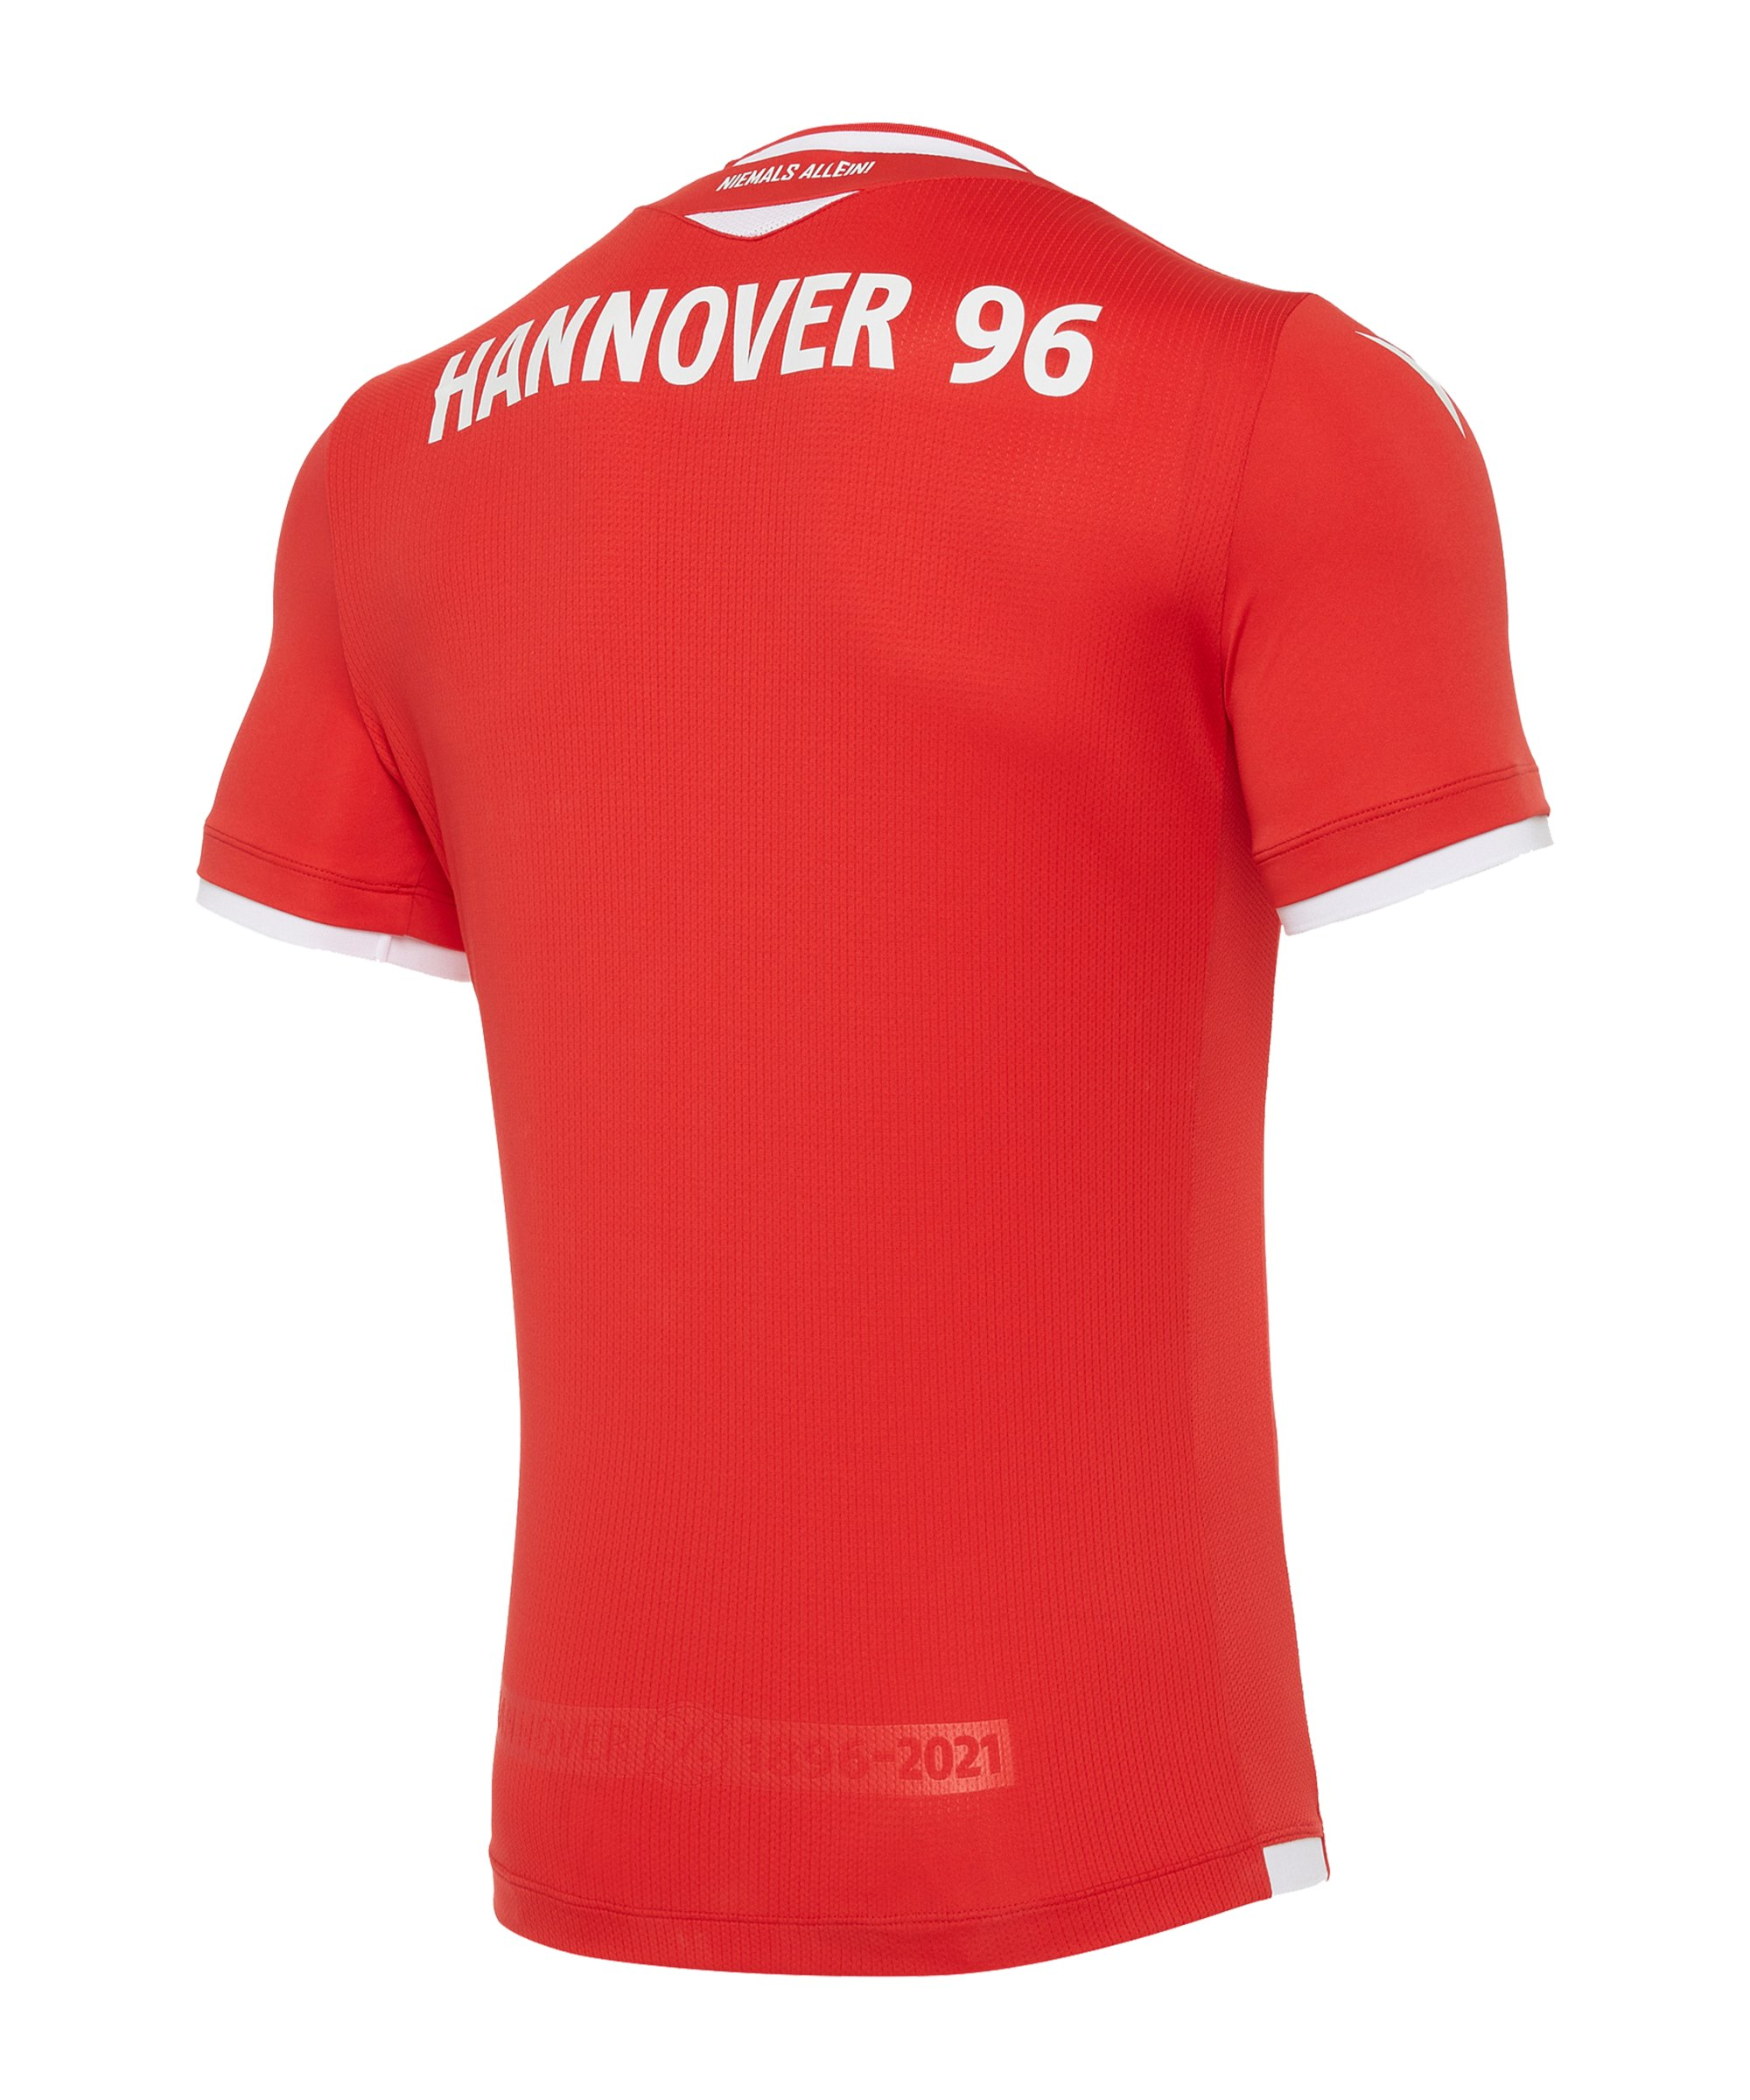 Hannover 96 2021